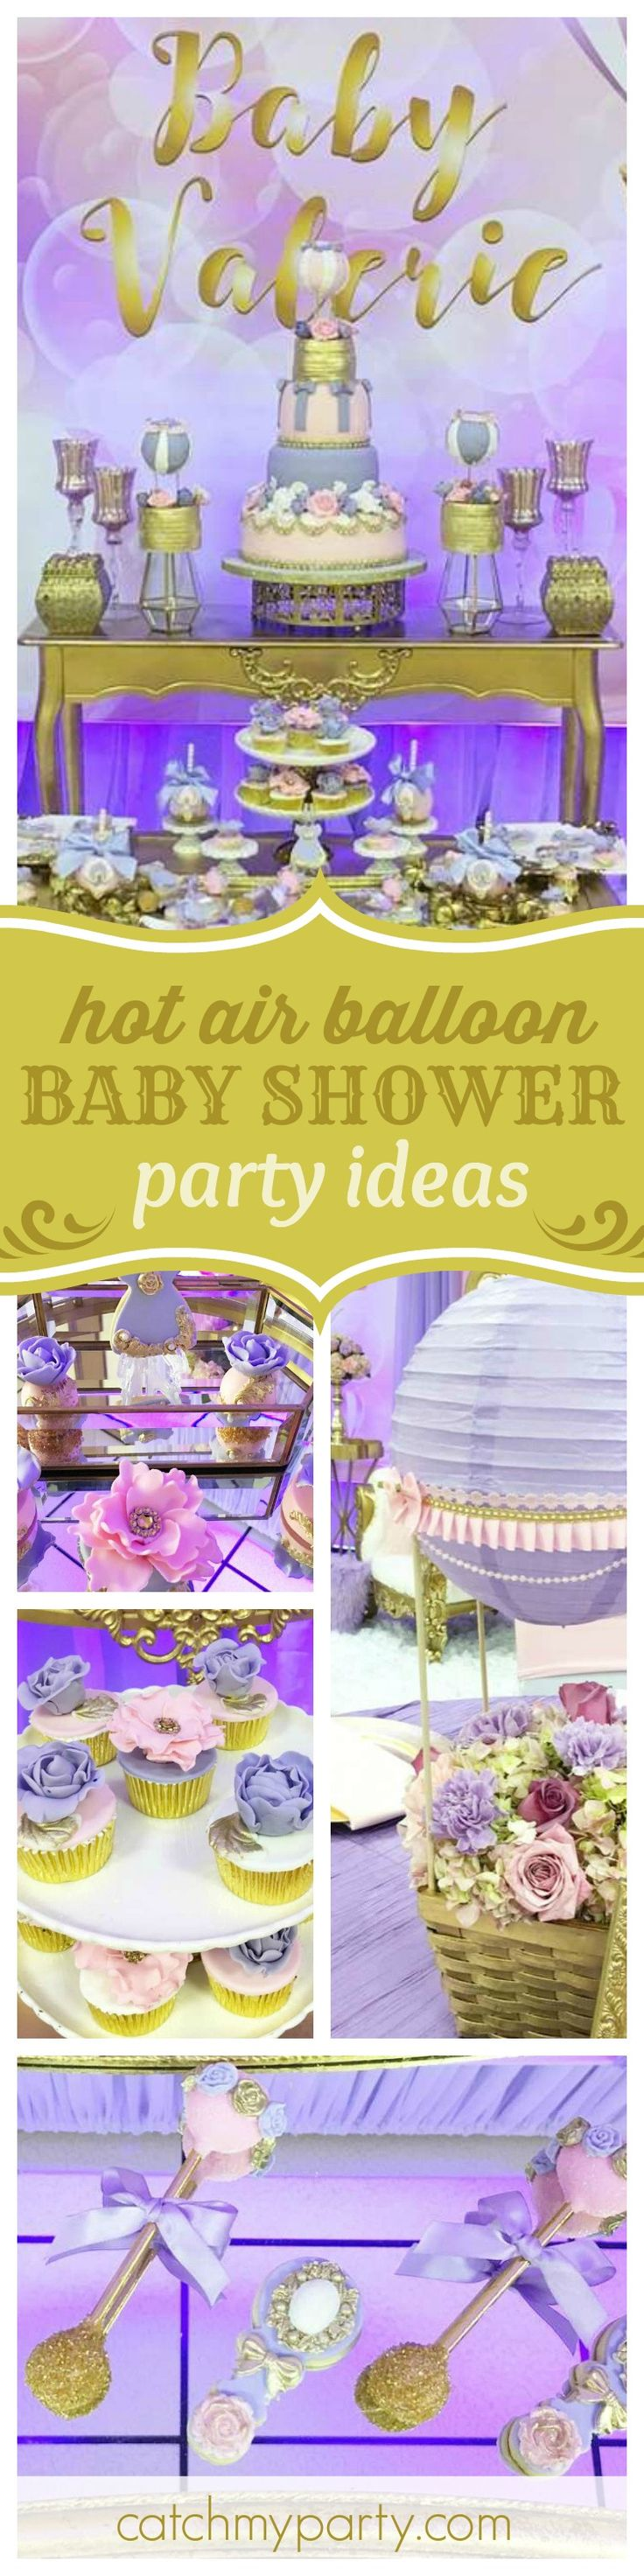 Fly away with this fantastic Hot Air Balloon Baby Shower. The cake is gorgeous!!  See more party ideas and share yours at CatchMyParty.com